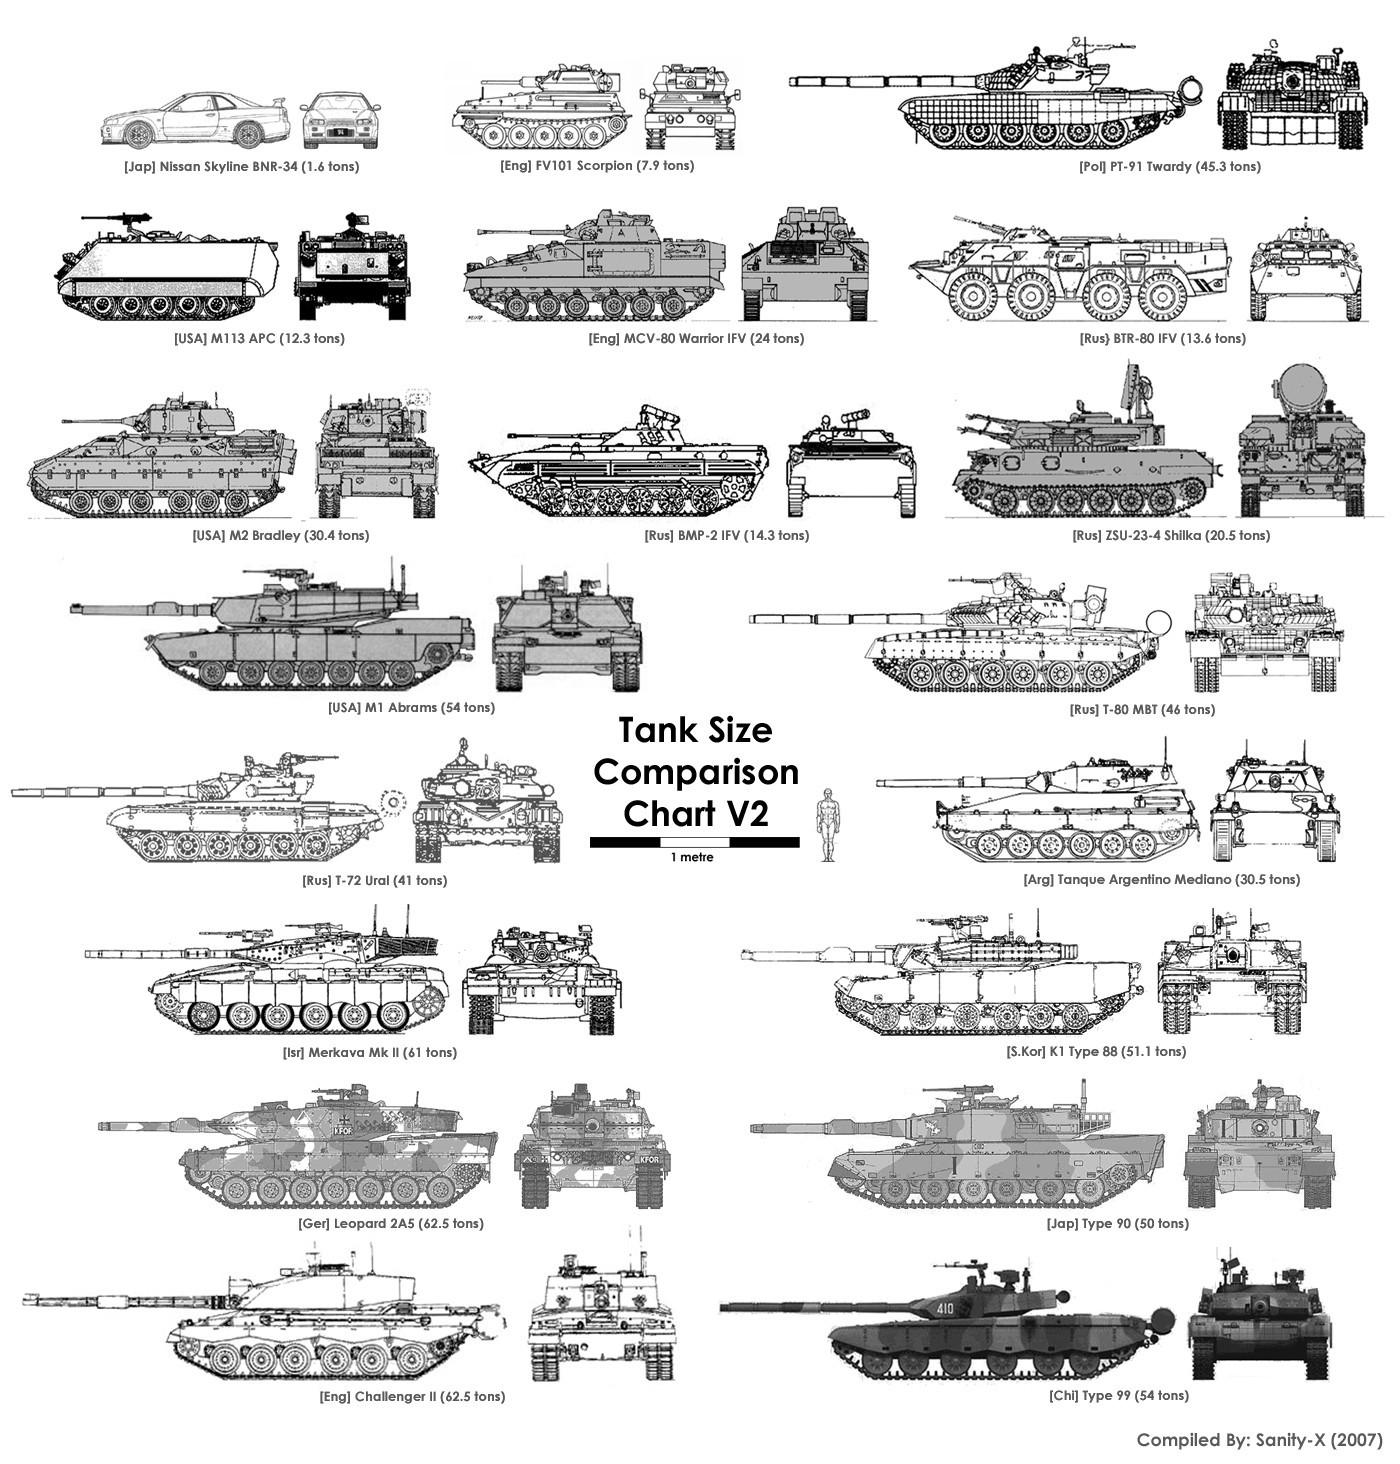 tanks comparisons chart HD Wallpaper